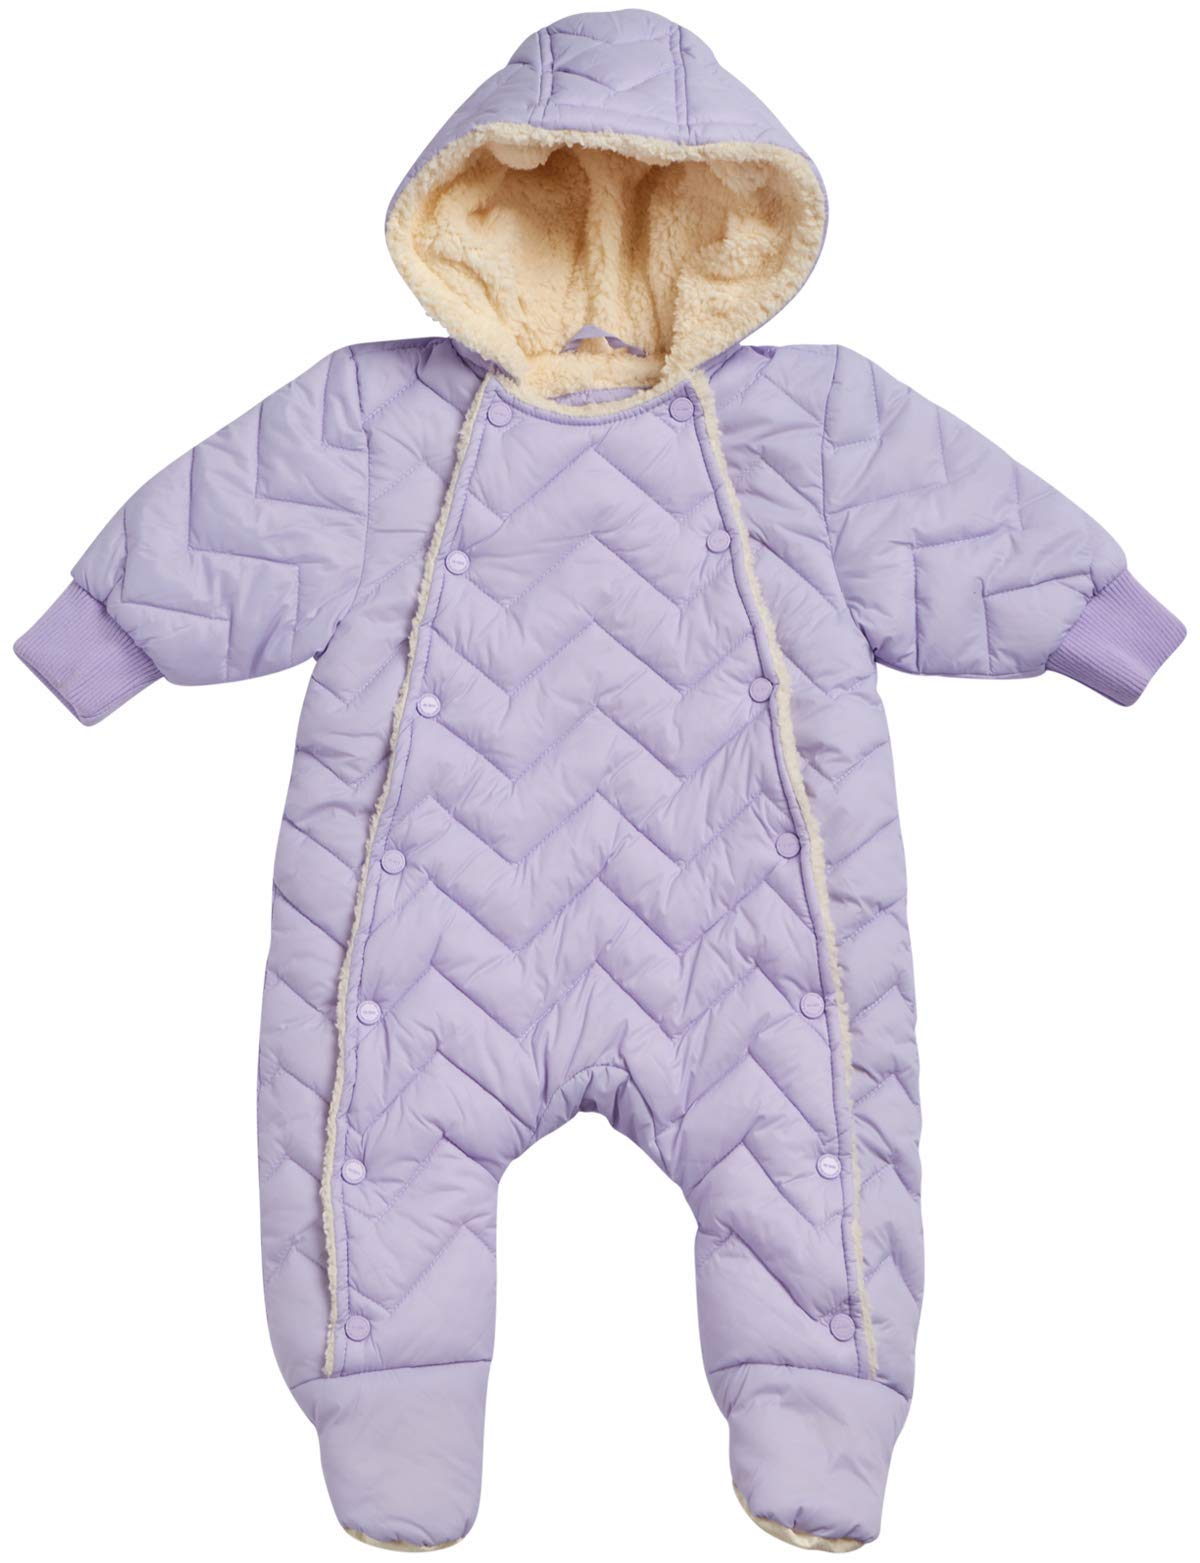 Urban Republic Newborn Baby Girls Sherpa Lined Pram Snowsuit, Size 3 Months, Lilac' by Urban Republic